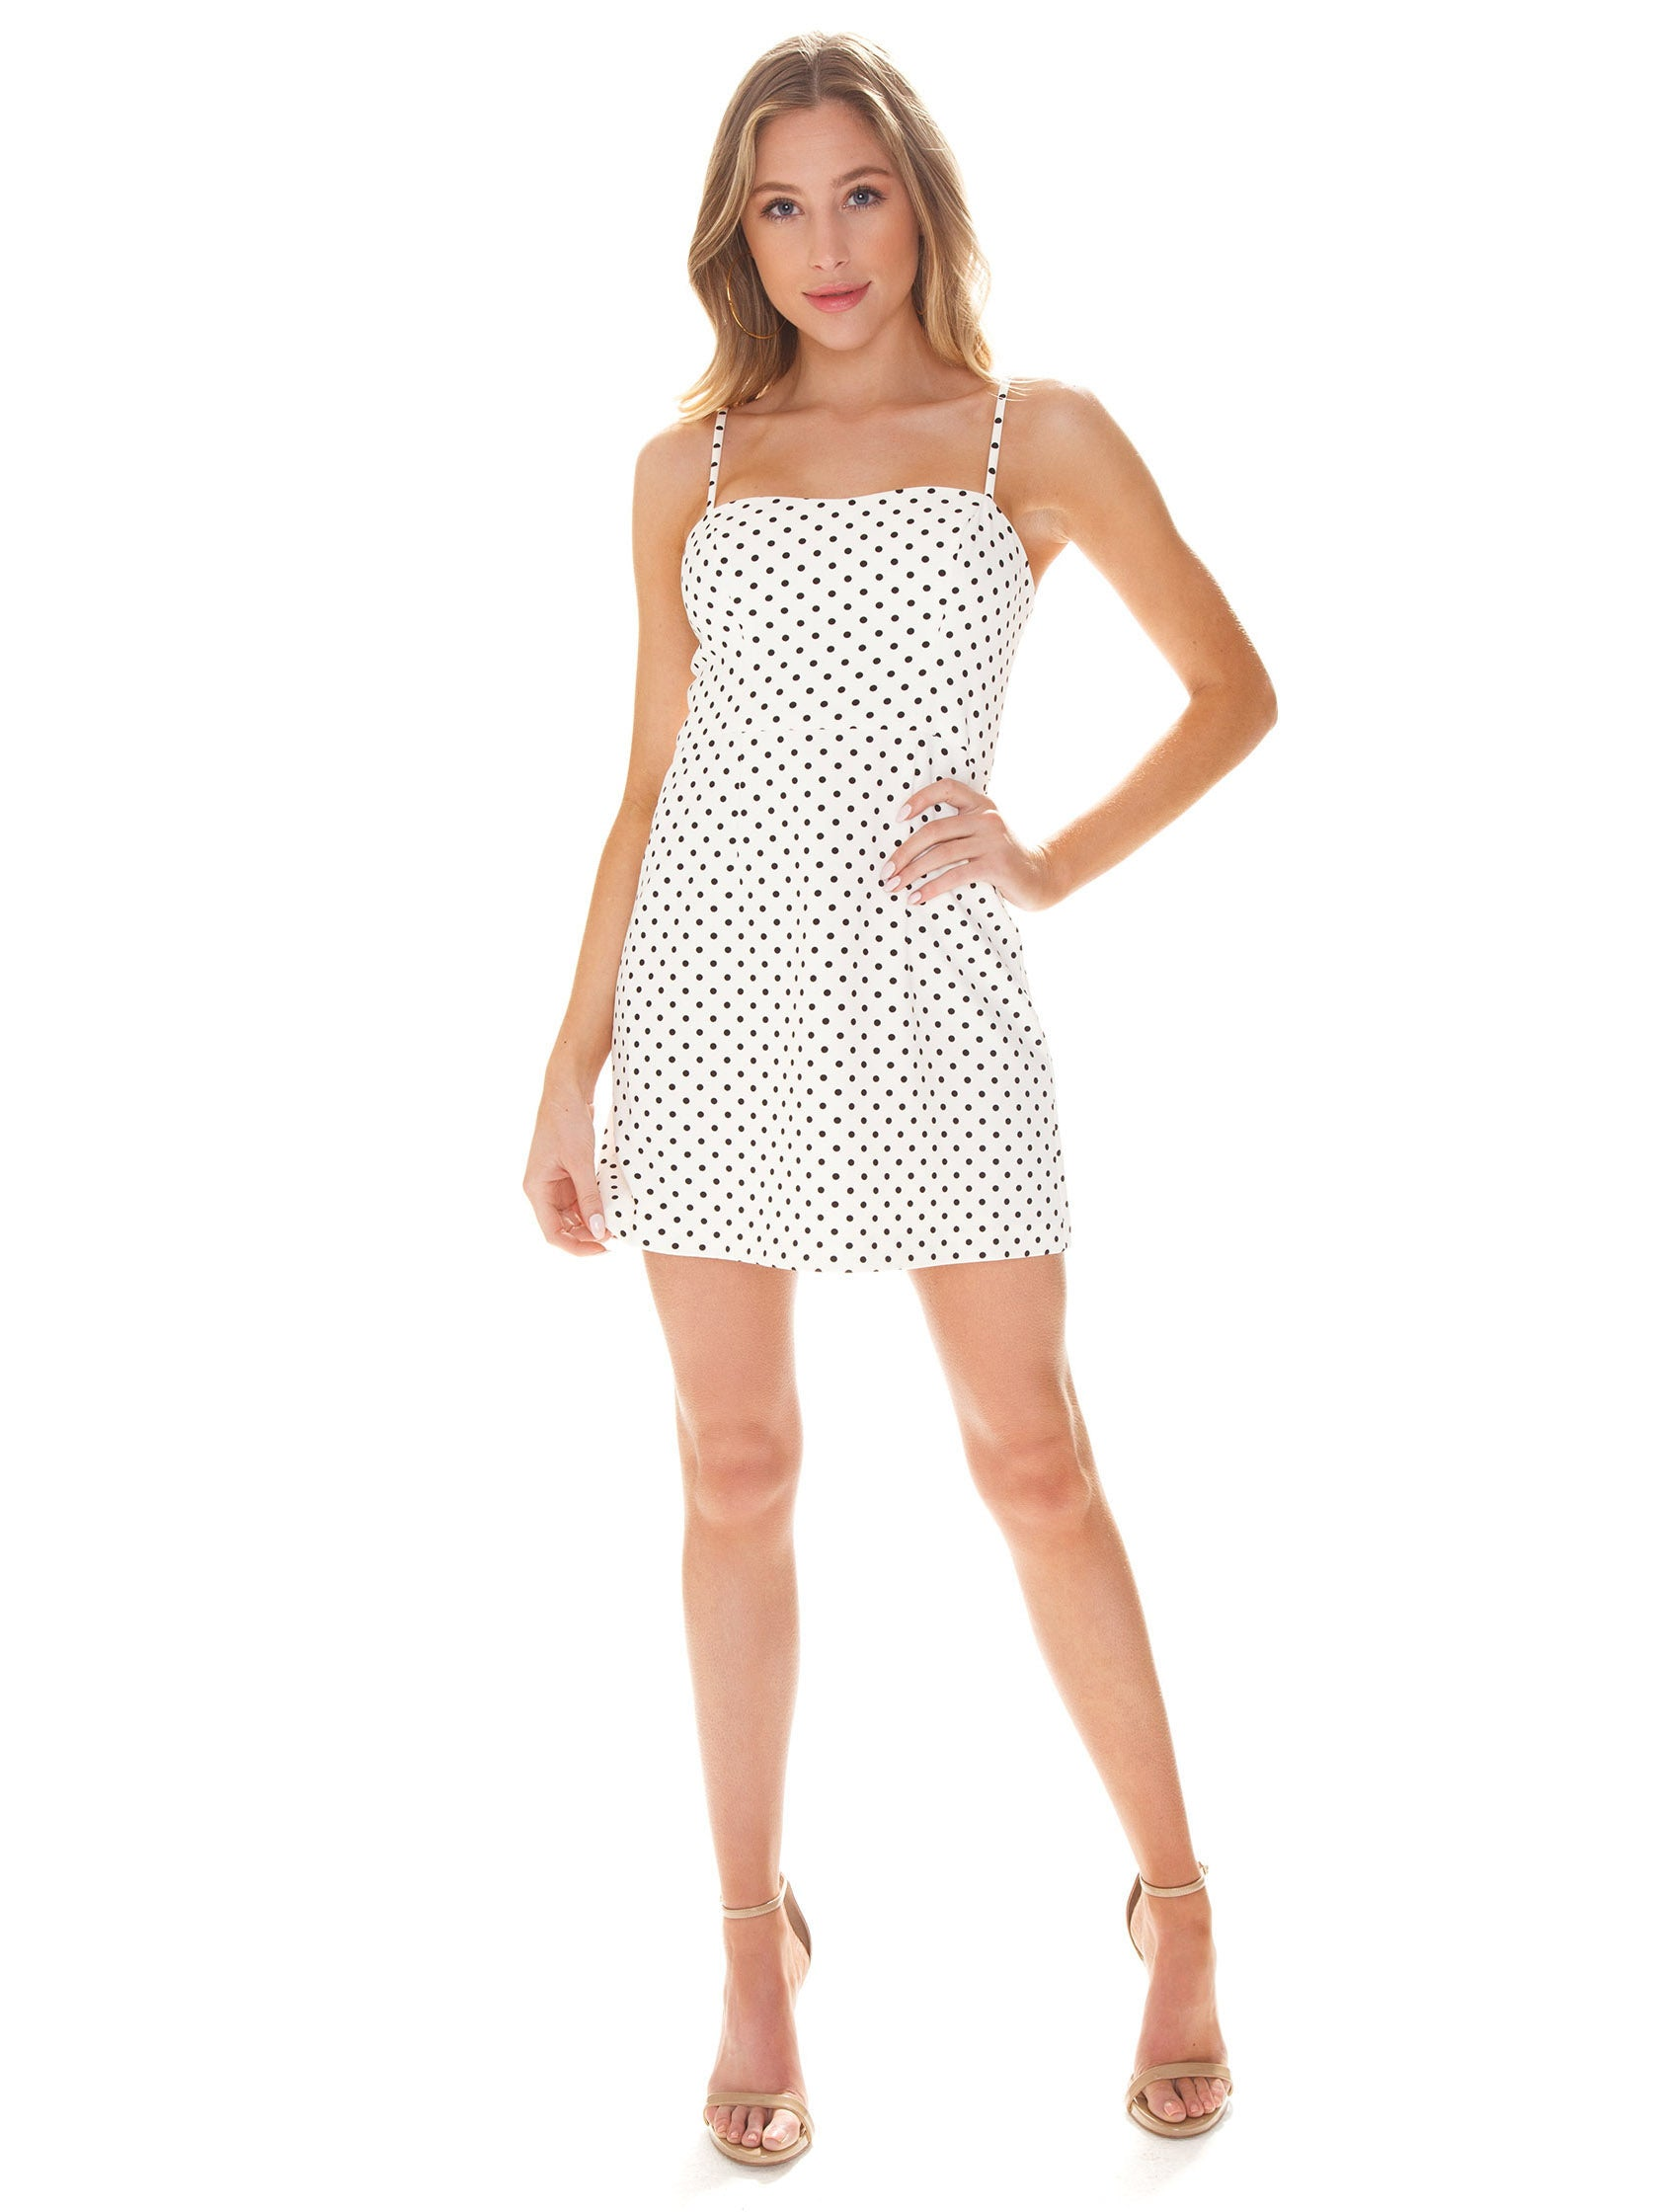 Women outfit in a dress rental from French Connection called Polka Dot Whisper Dress